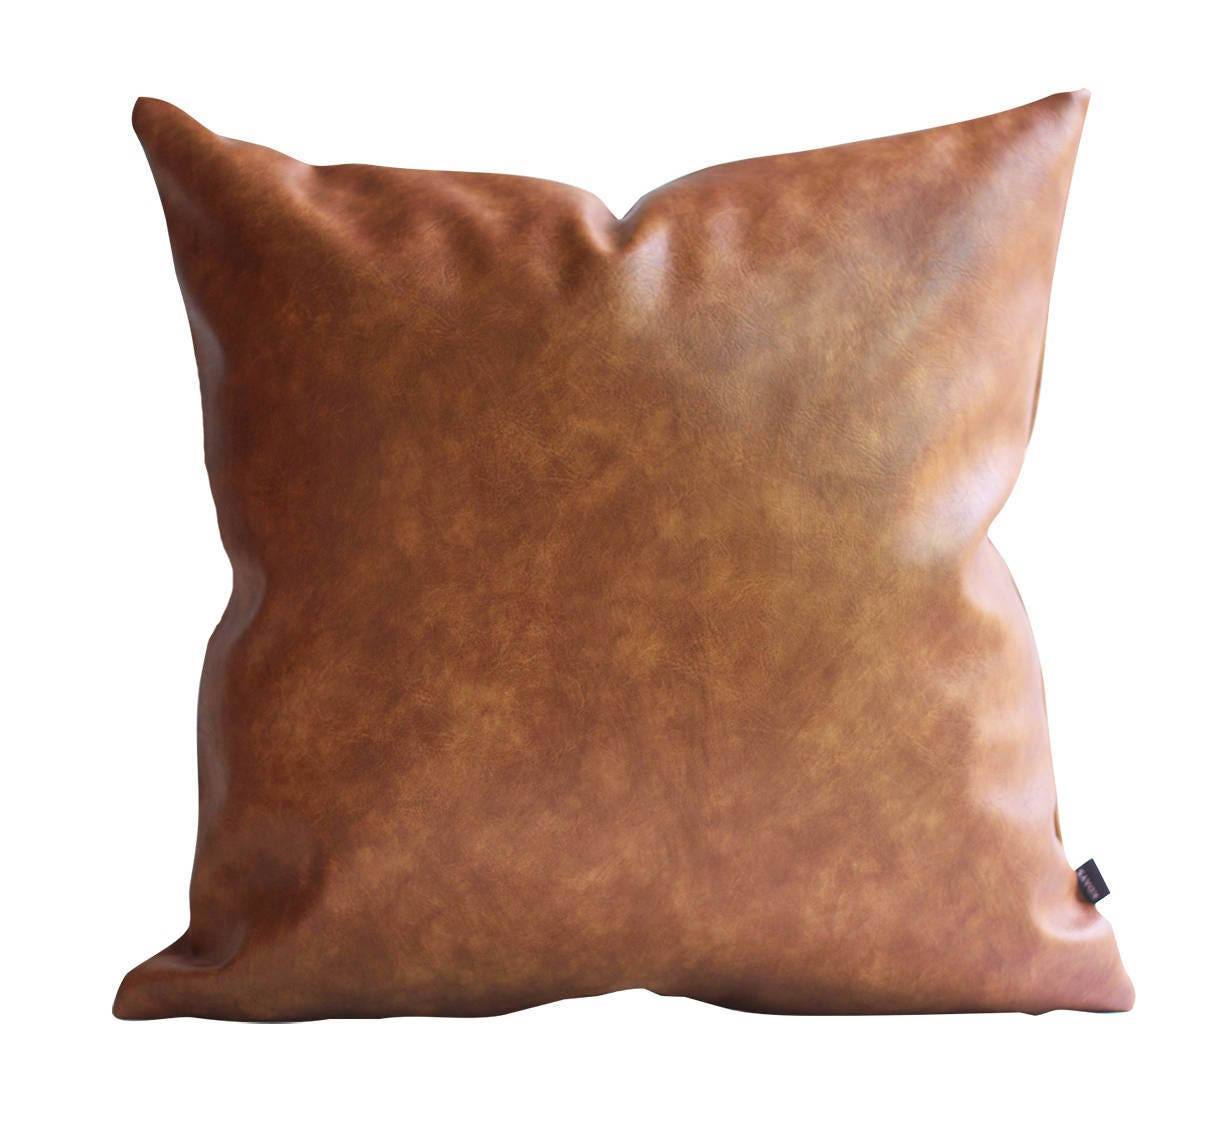 Kdays Thick Faux Leather Tan Pillow Cover Decorative For Couch